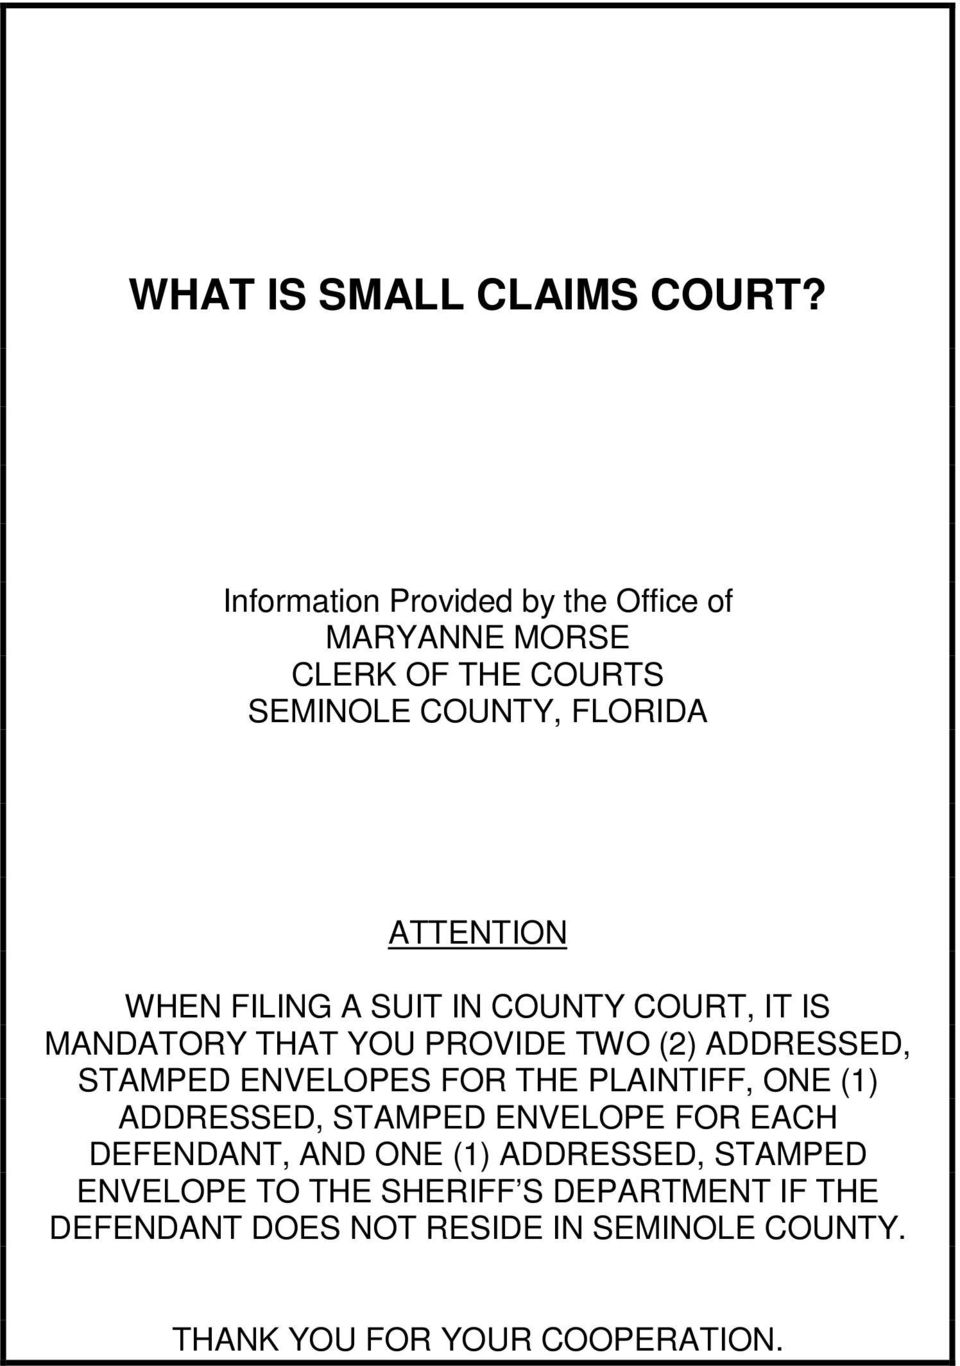 FILING A SUIT IN COUNTY COURT, IT IS MANDATORY THAT YOU PROVIDE TWO (2) ADDRESSED, STAMPED ENVELOPES FOR THE